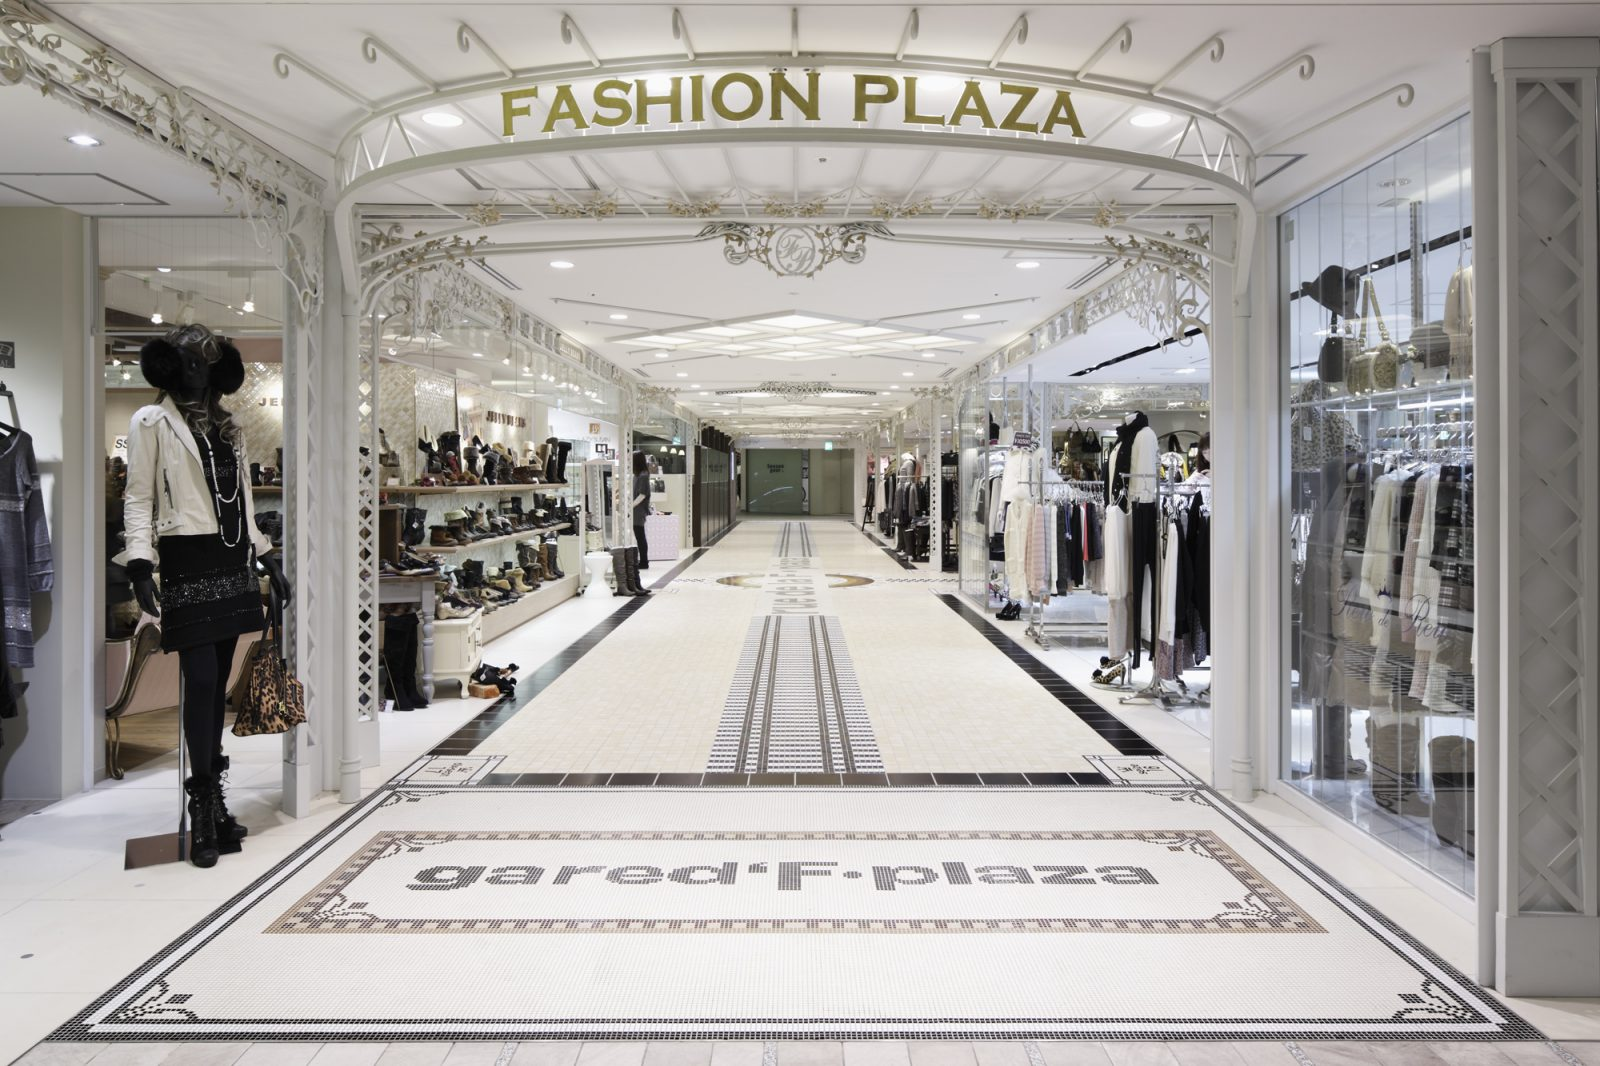 FASHION PLAZA